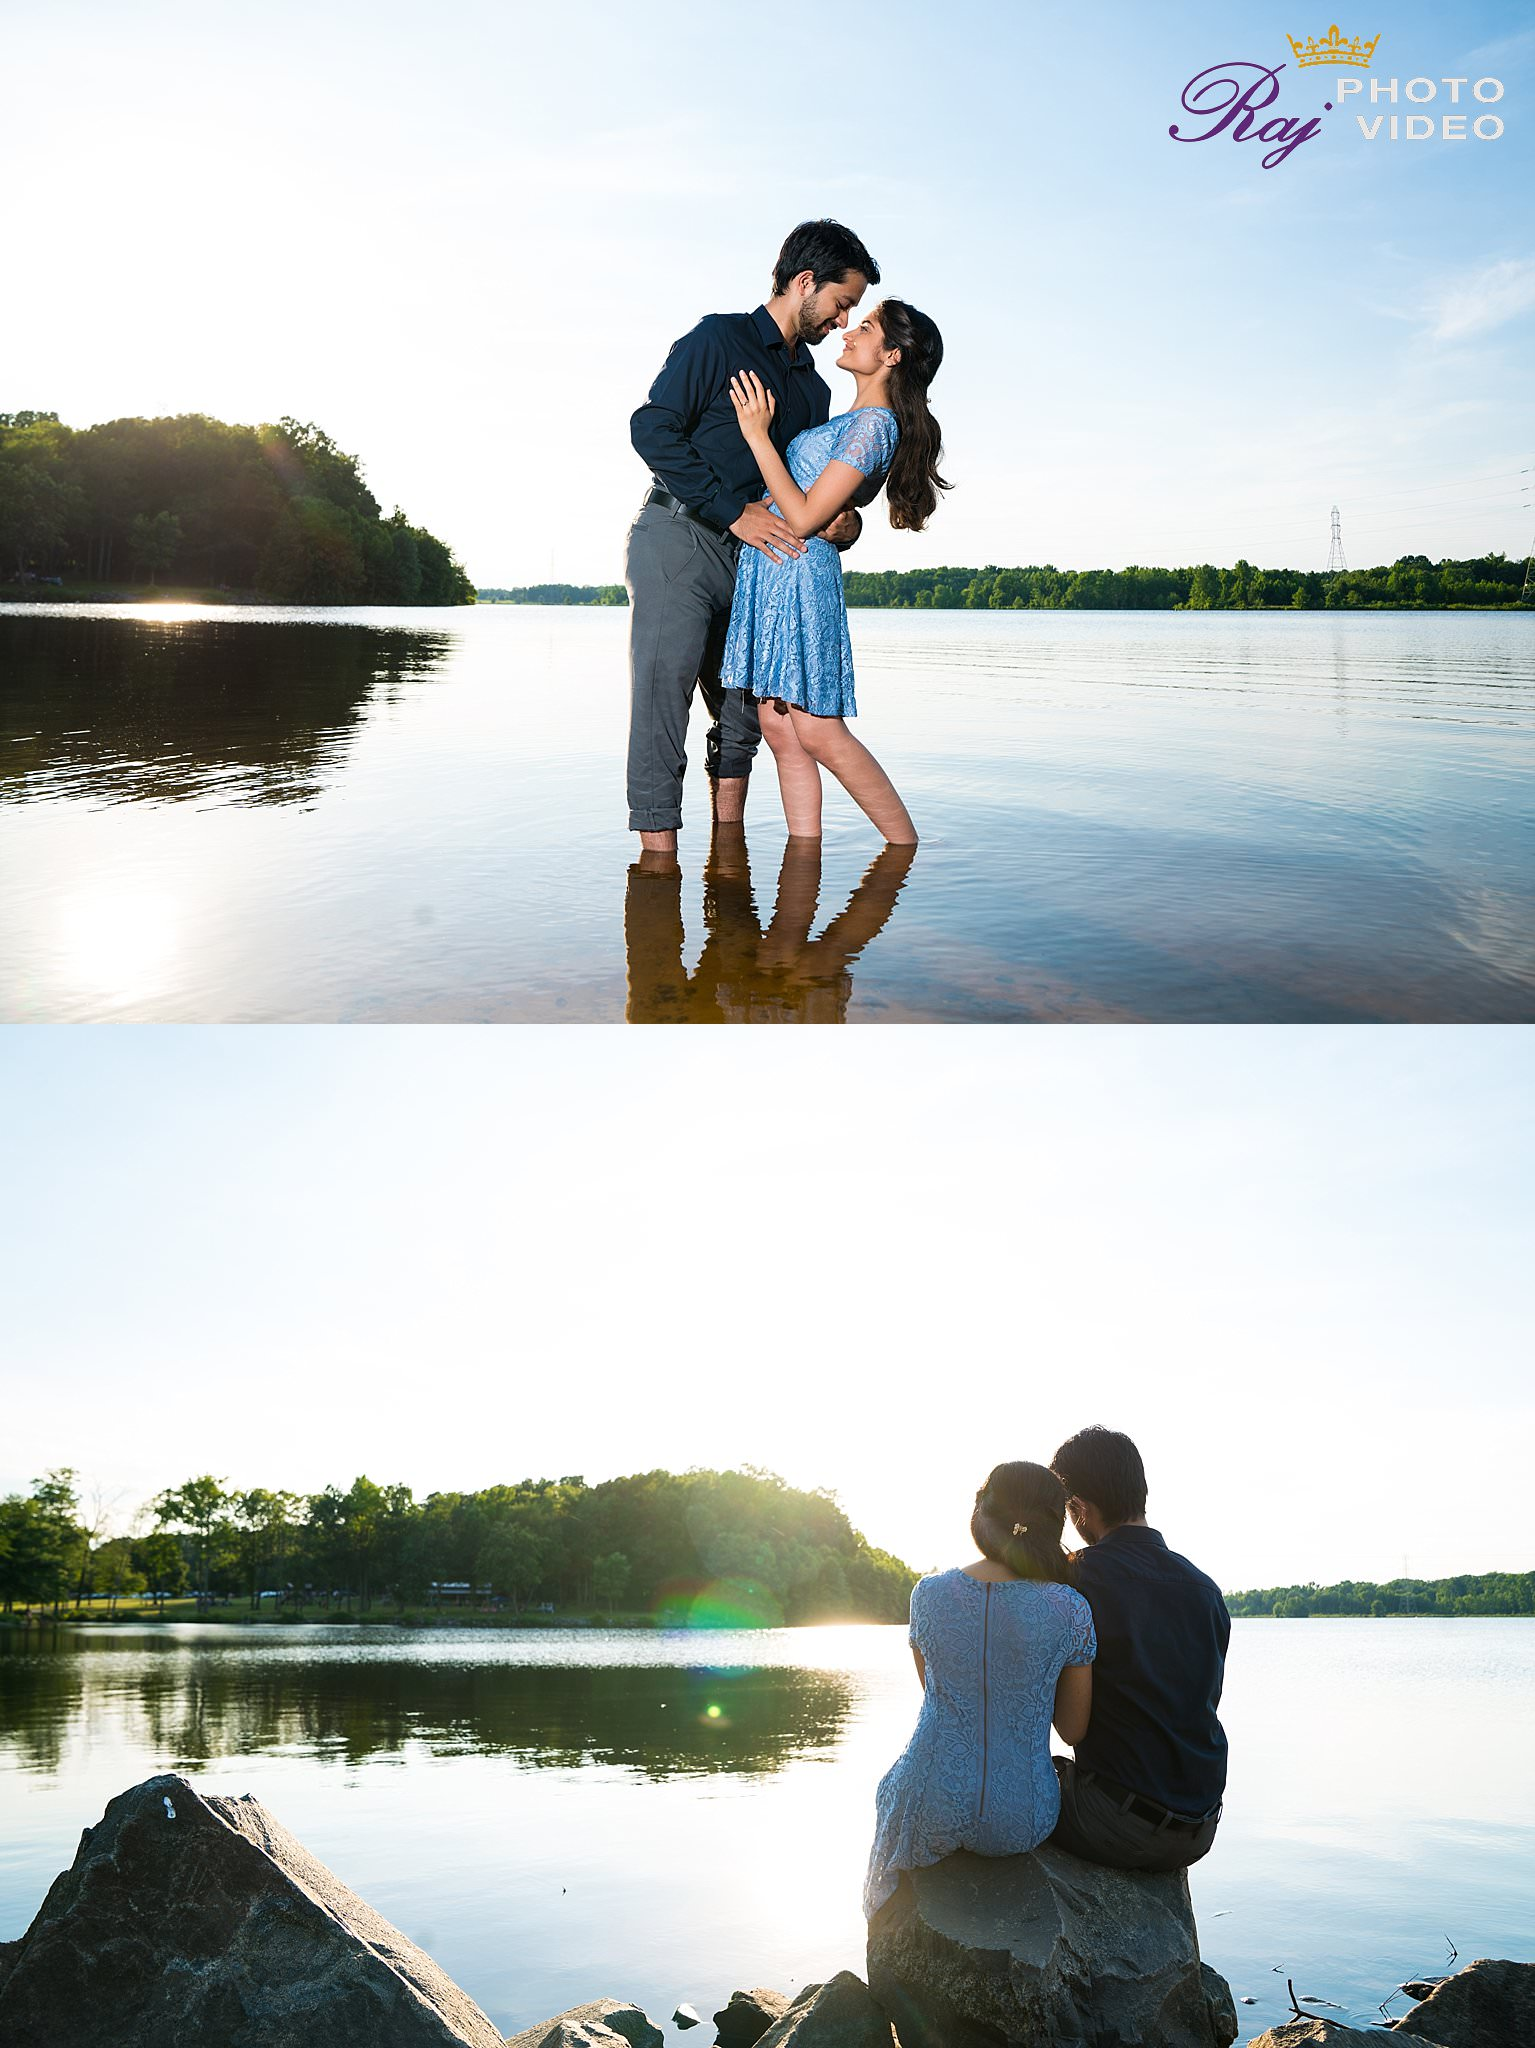 Mercer-County-Park-Engagement-Shoot-Shaili-Rahul-5_Raj_Photo_Video.jpg